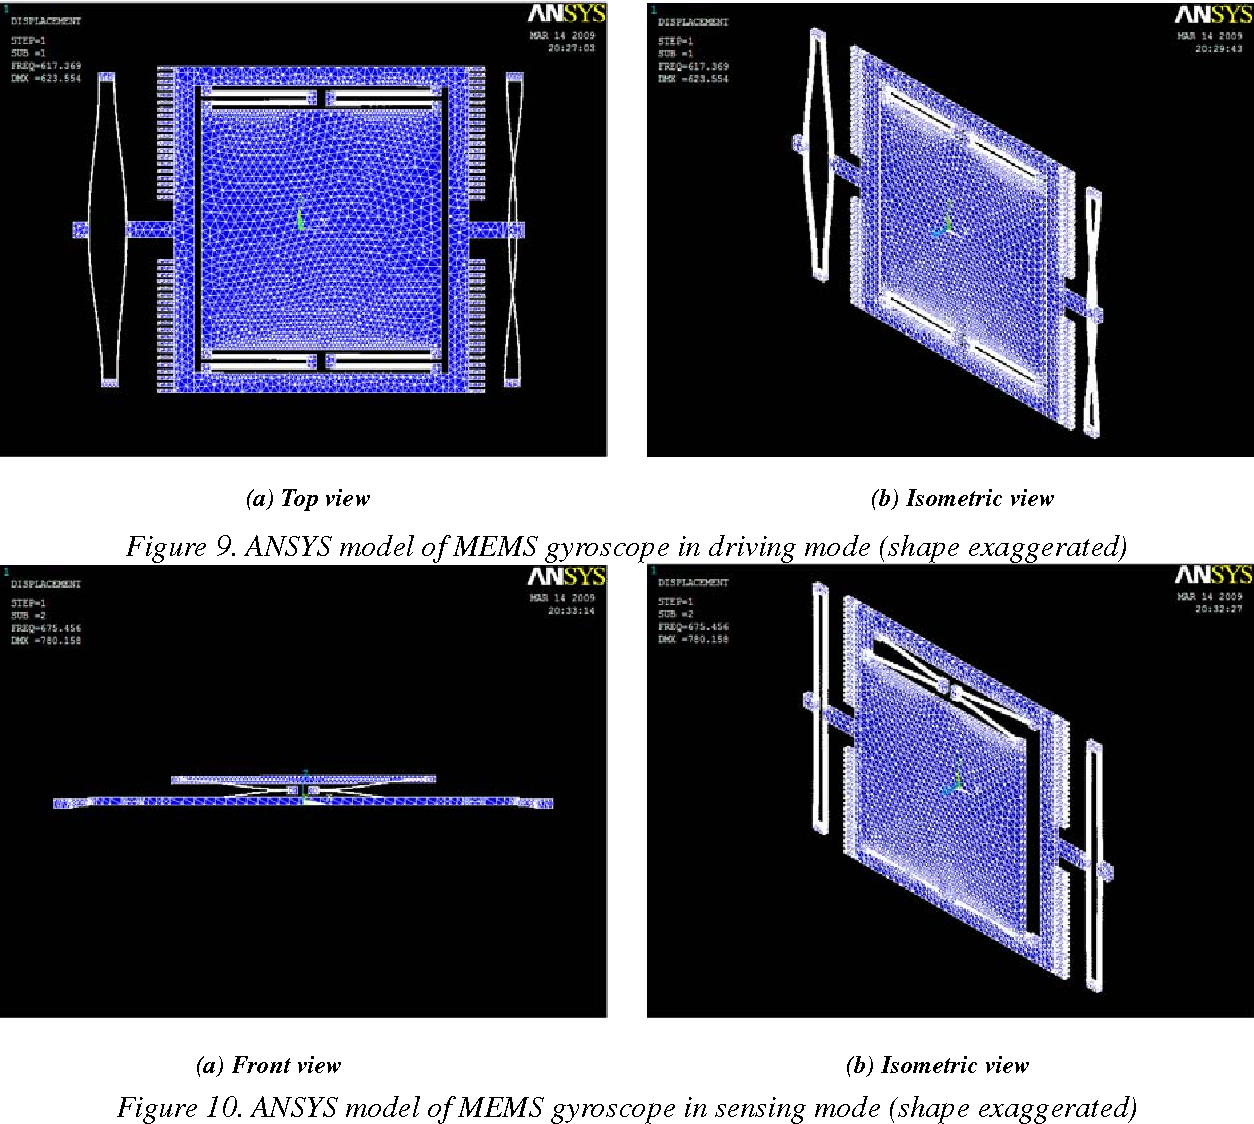 ANSYS Model Of MEMS Gyroscope In Sensing Mode Shape Exaggerated